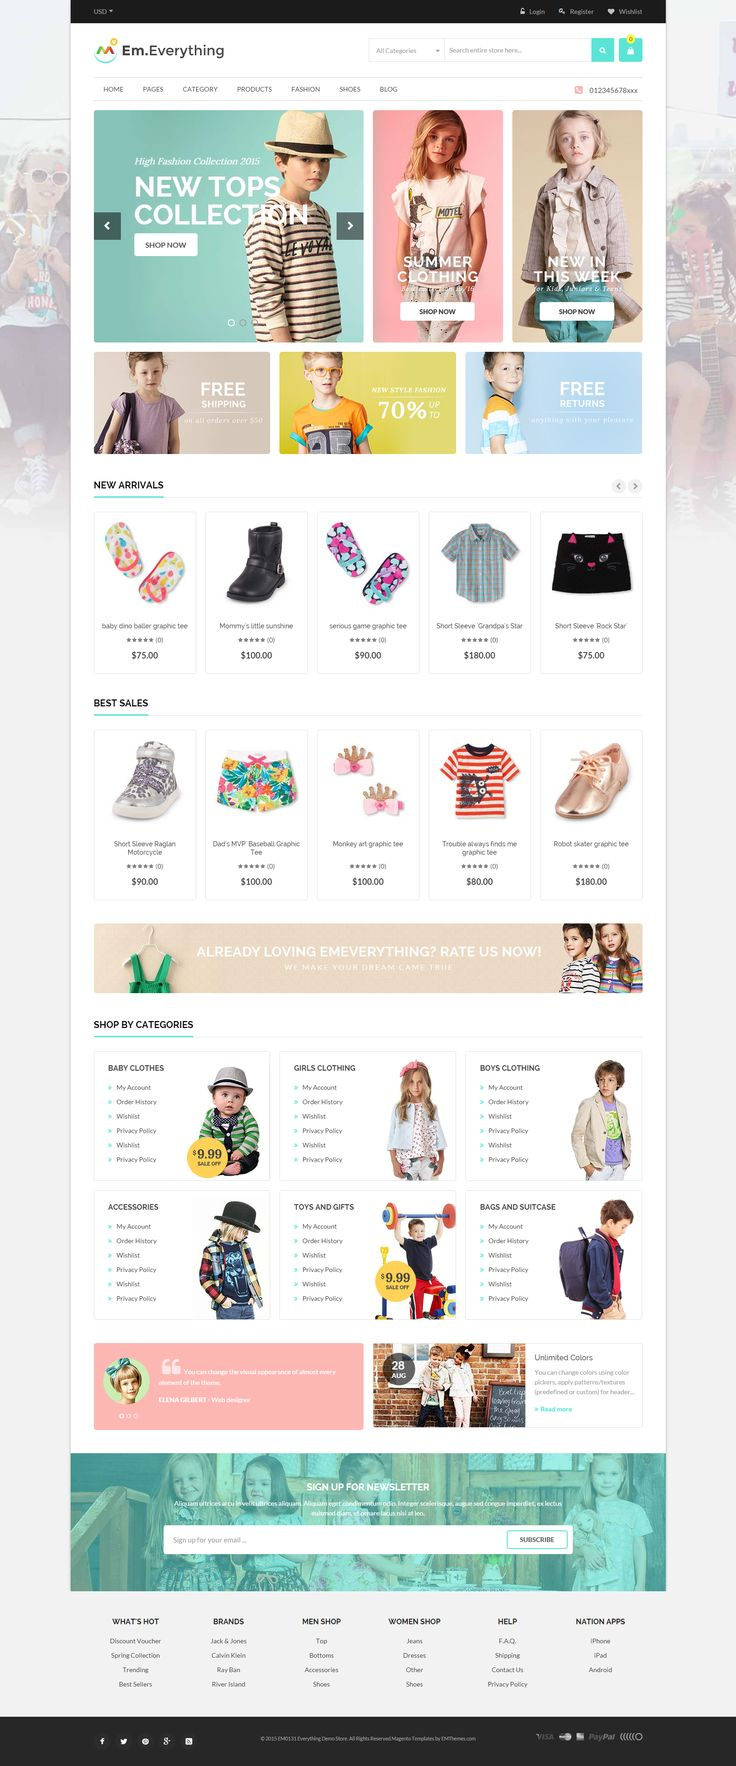 How to design a website for kids - E Commerce Web Design Inspiration For Fashion Brands And Businesses For Fashion Business Tips